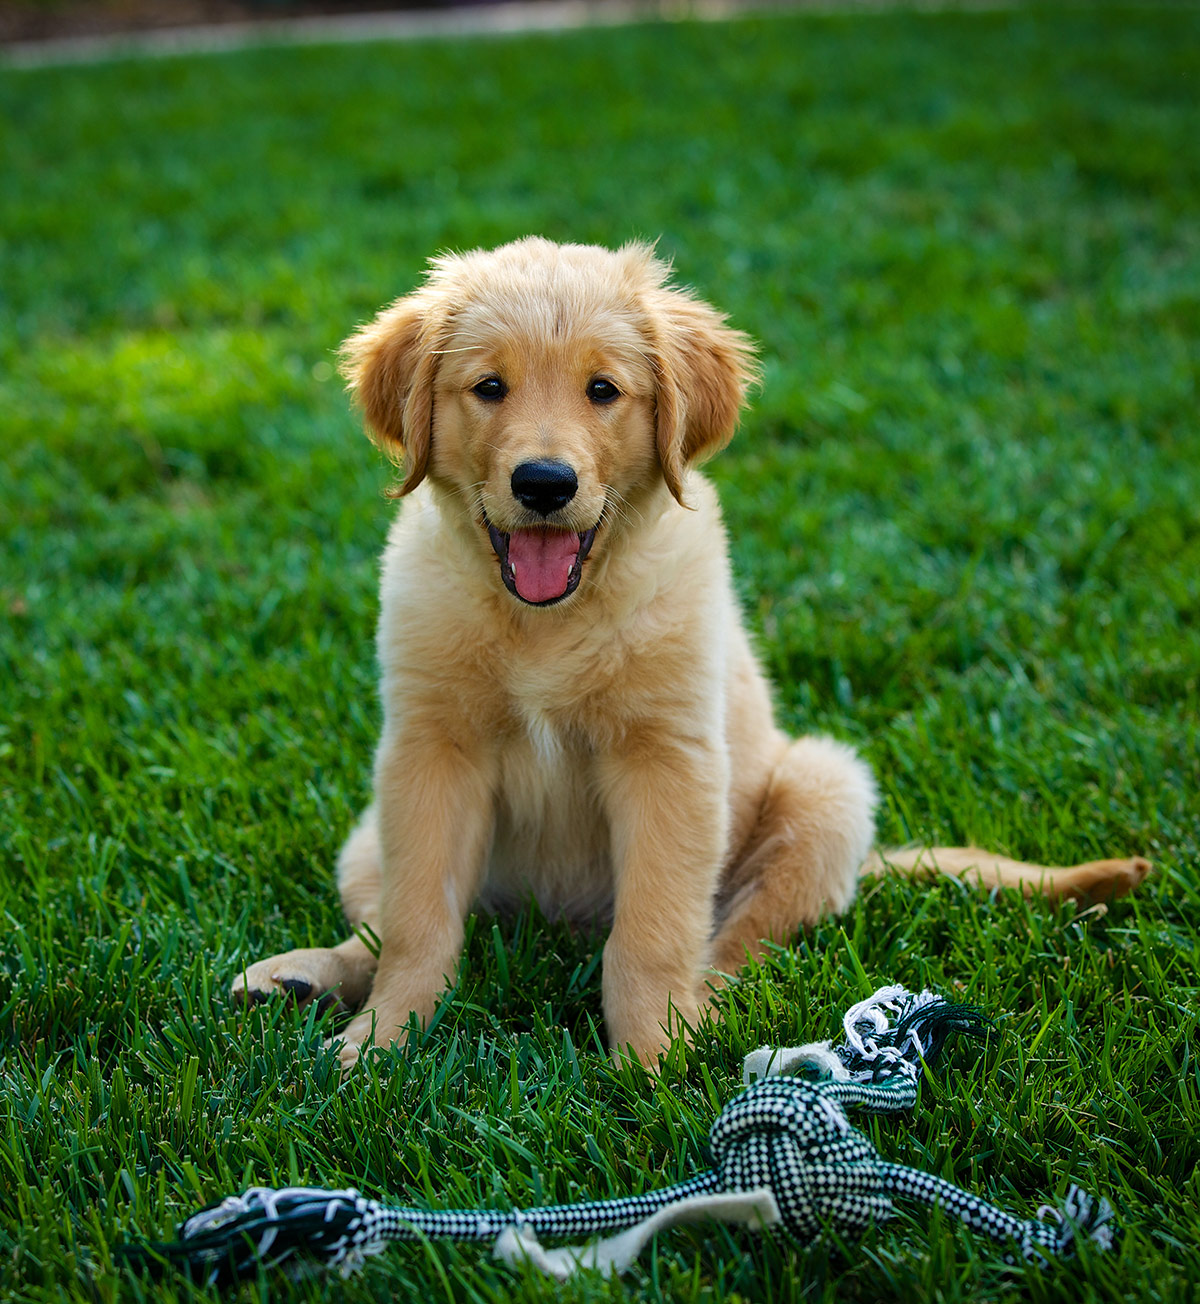 Photos of Golden Retriever puppies